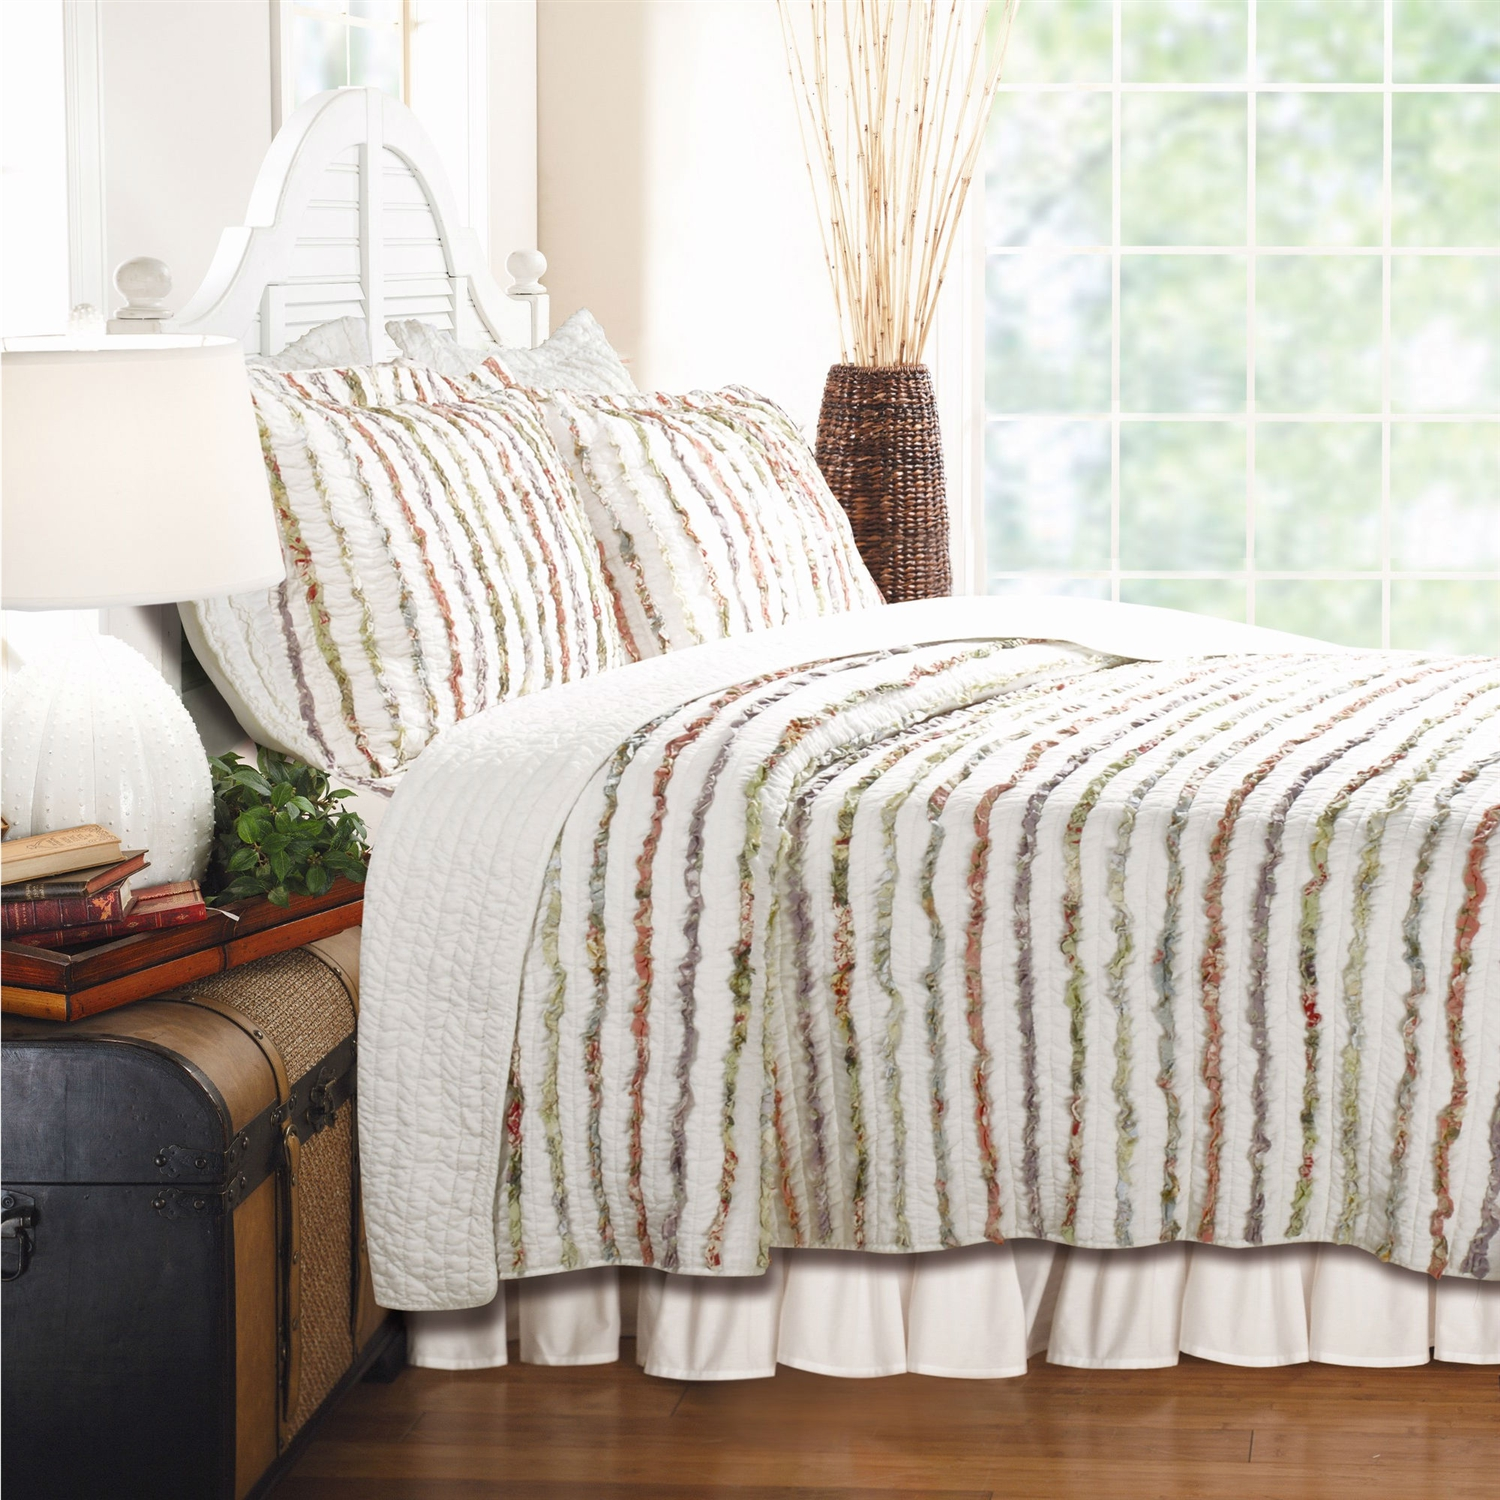 Full Queen 100 Cotton Quilt Set Ruffled Multi Color Stripes Fastfurnishings Com